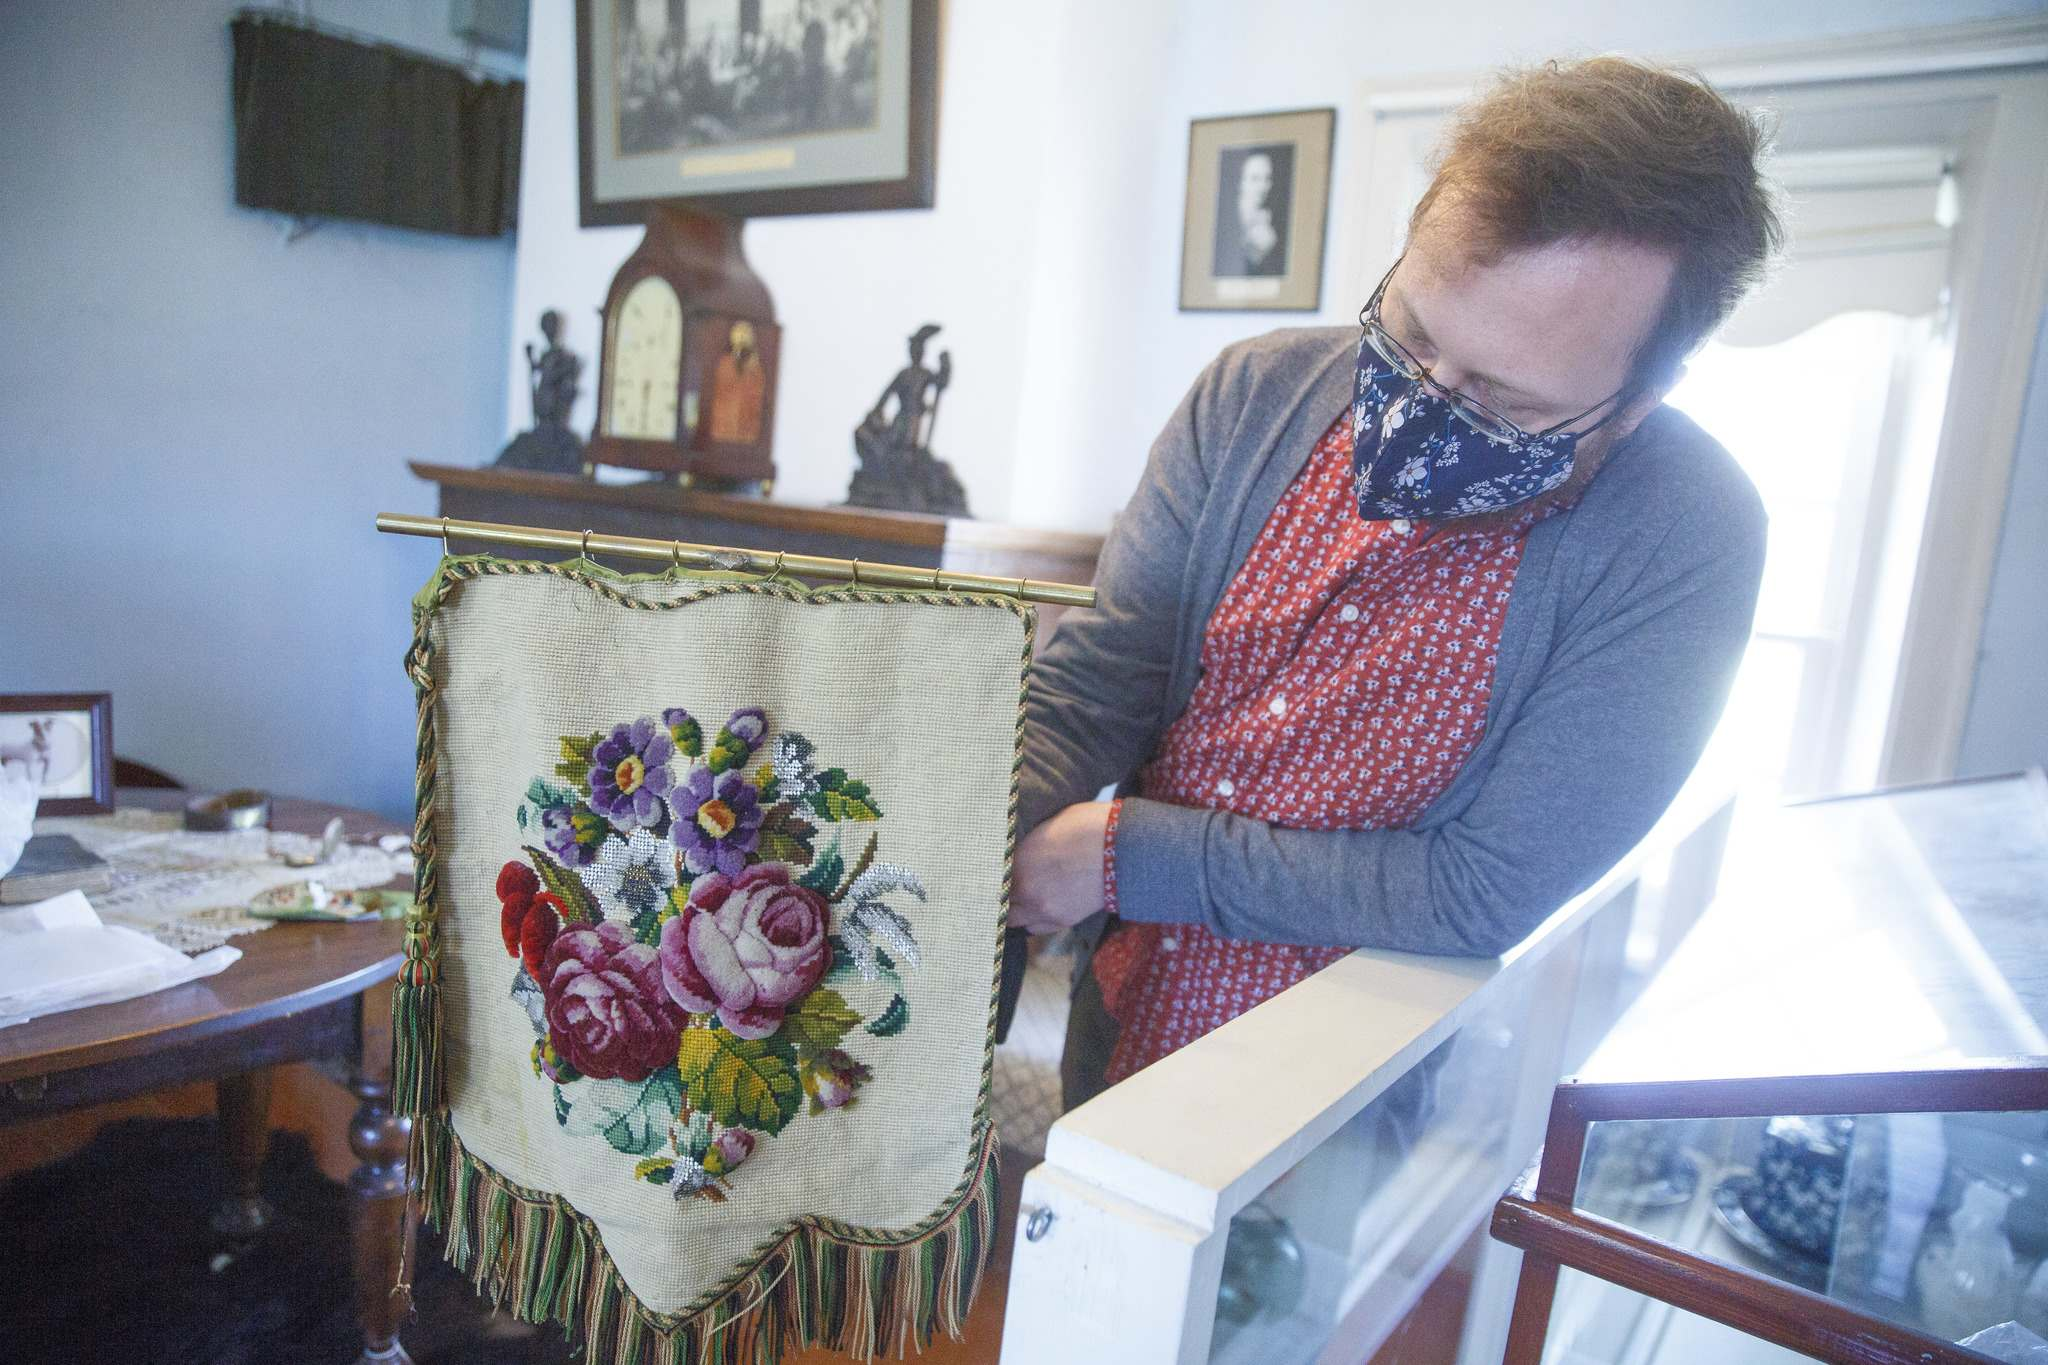 A fire screen made with bead and wool embroidery from the late 19th century on display. (Mike Deal / Winnipeg Free Press)</p>